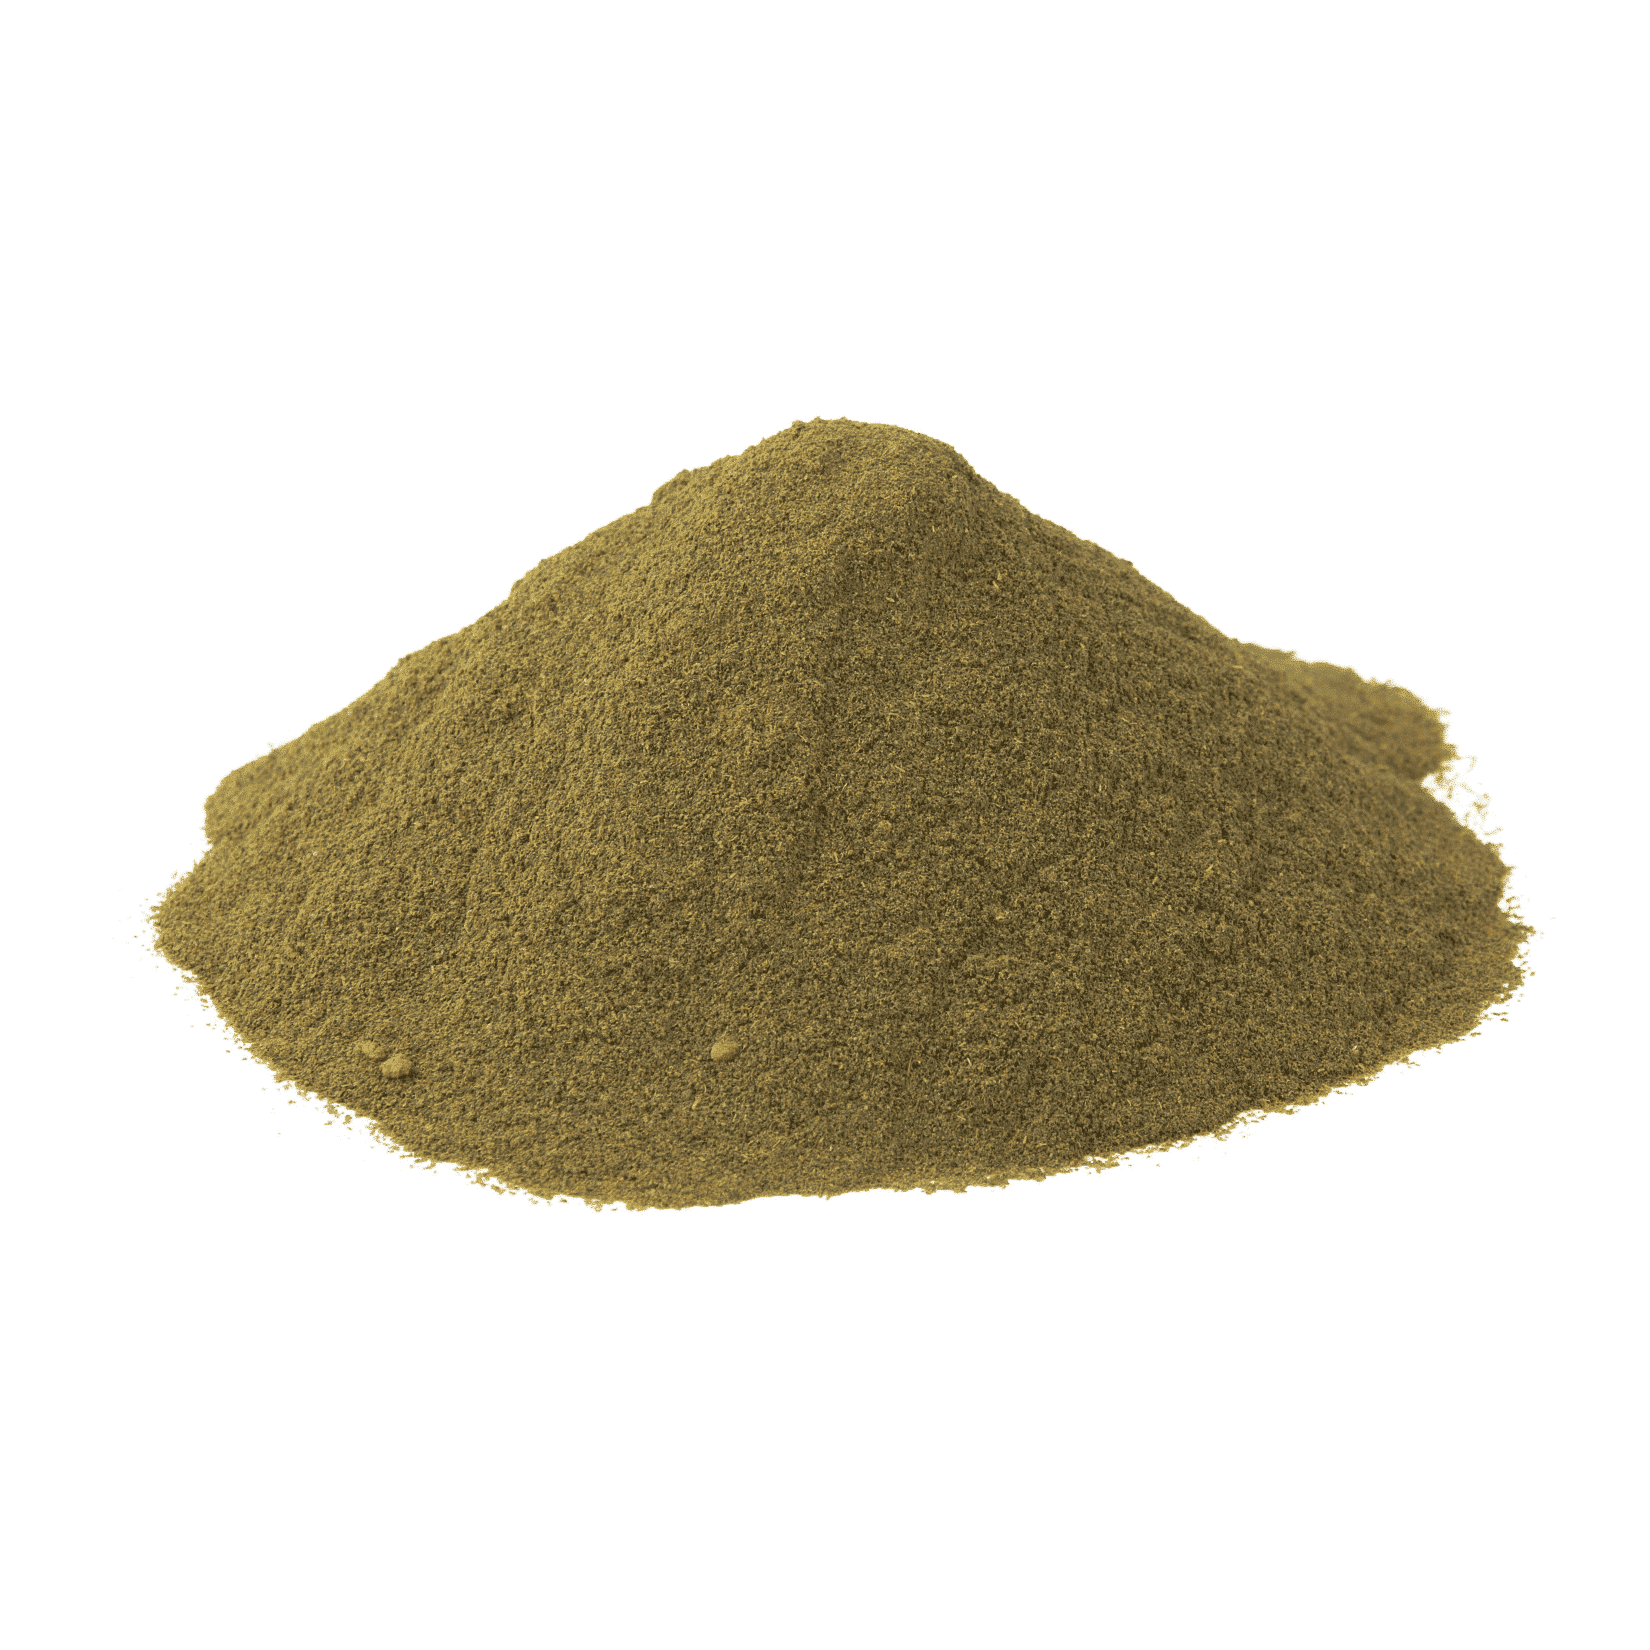 Red Kali Kratom for Sale